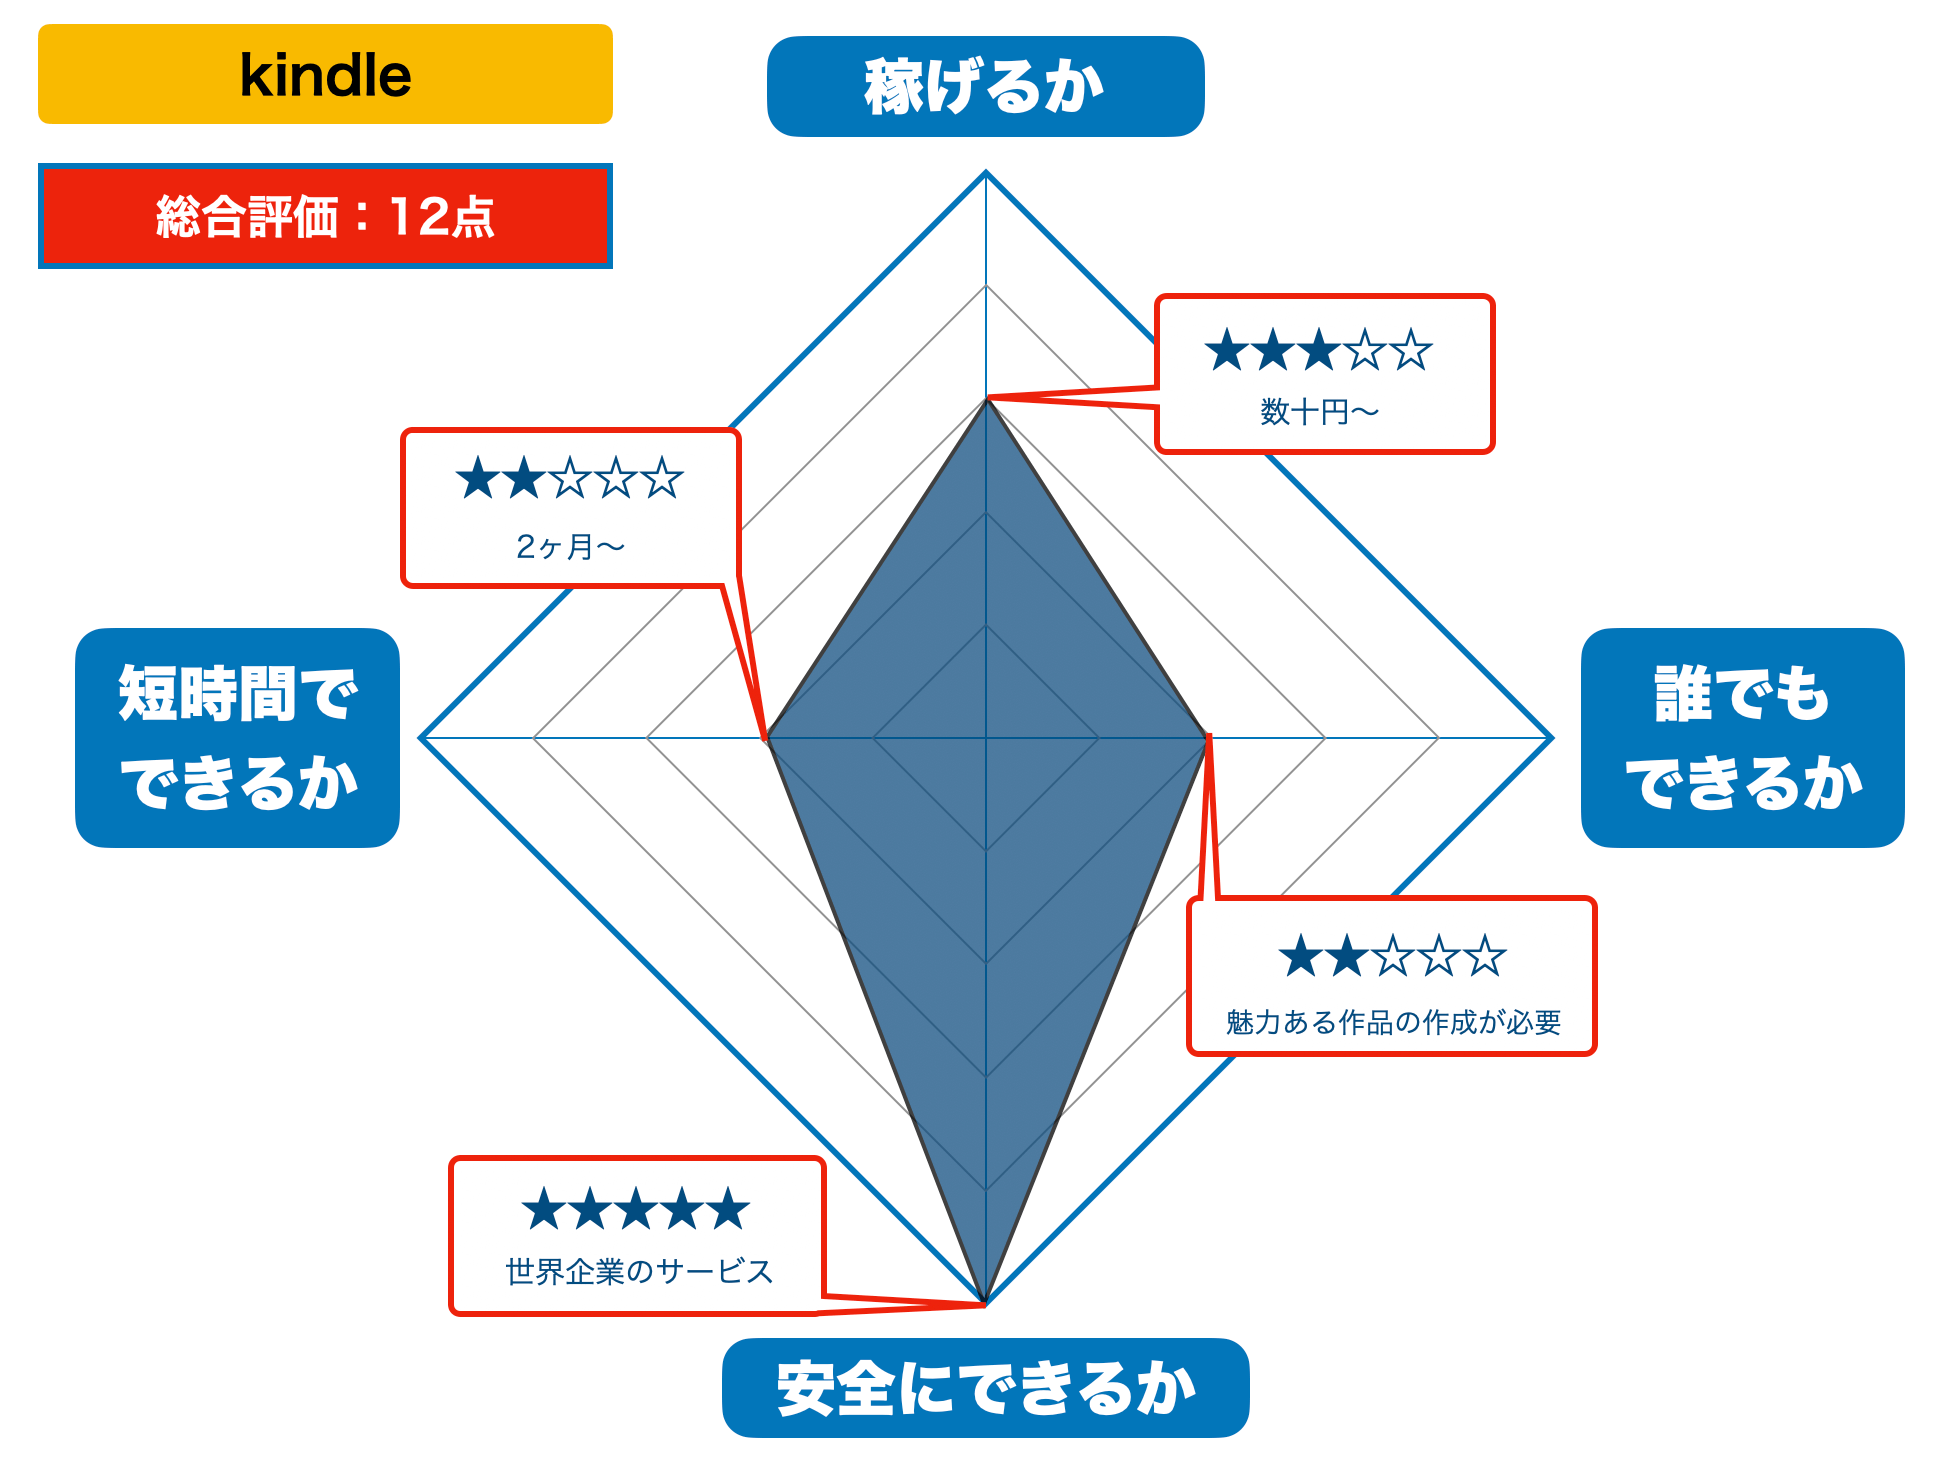 kindleの評価